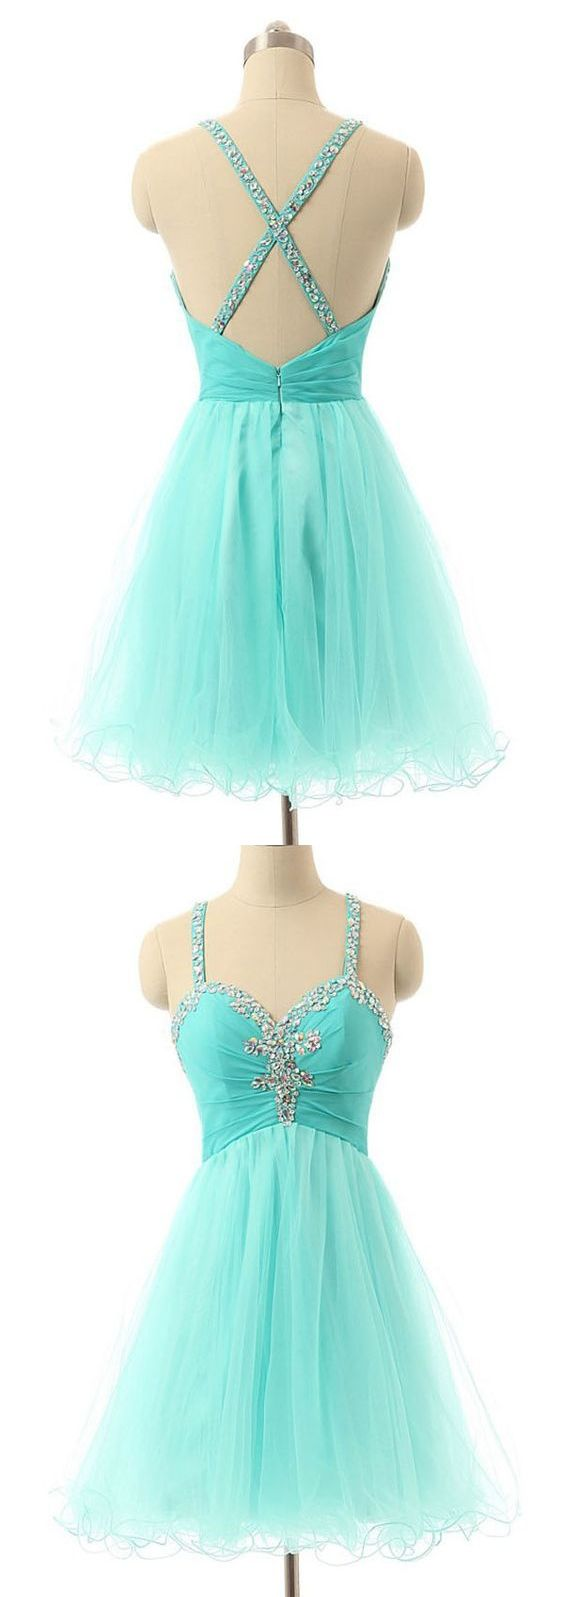 Sexy homecoming dress spaghetti straps aline short prom dress sage